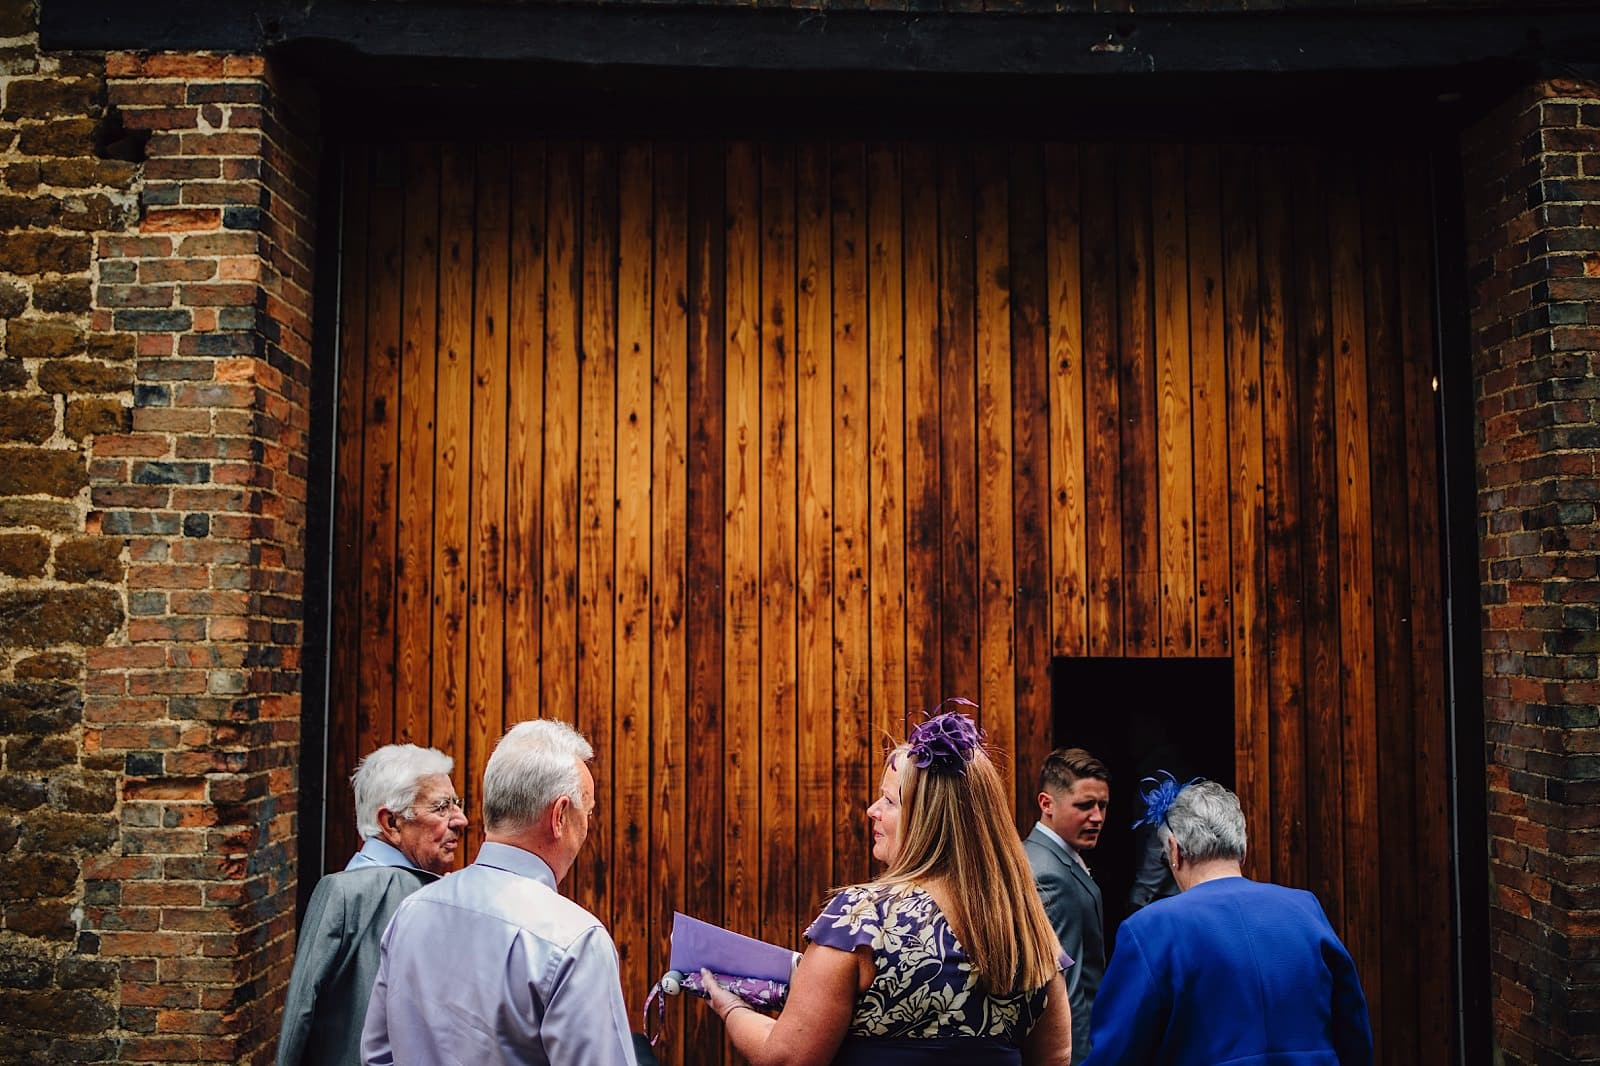 Dovecote barn adderbury wedding photography 035